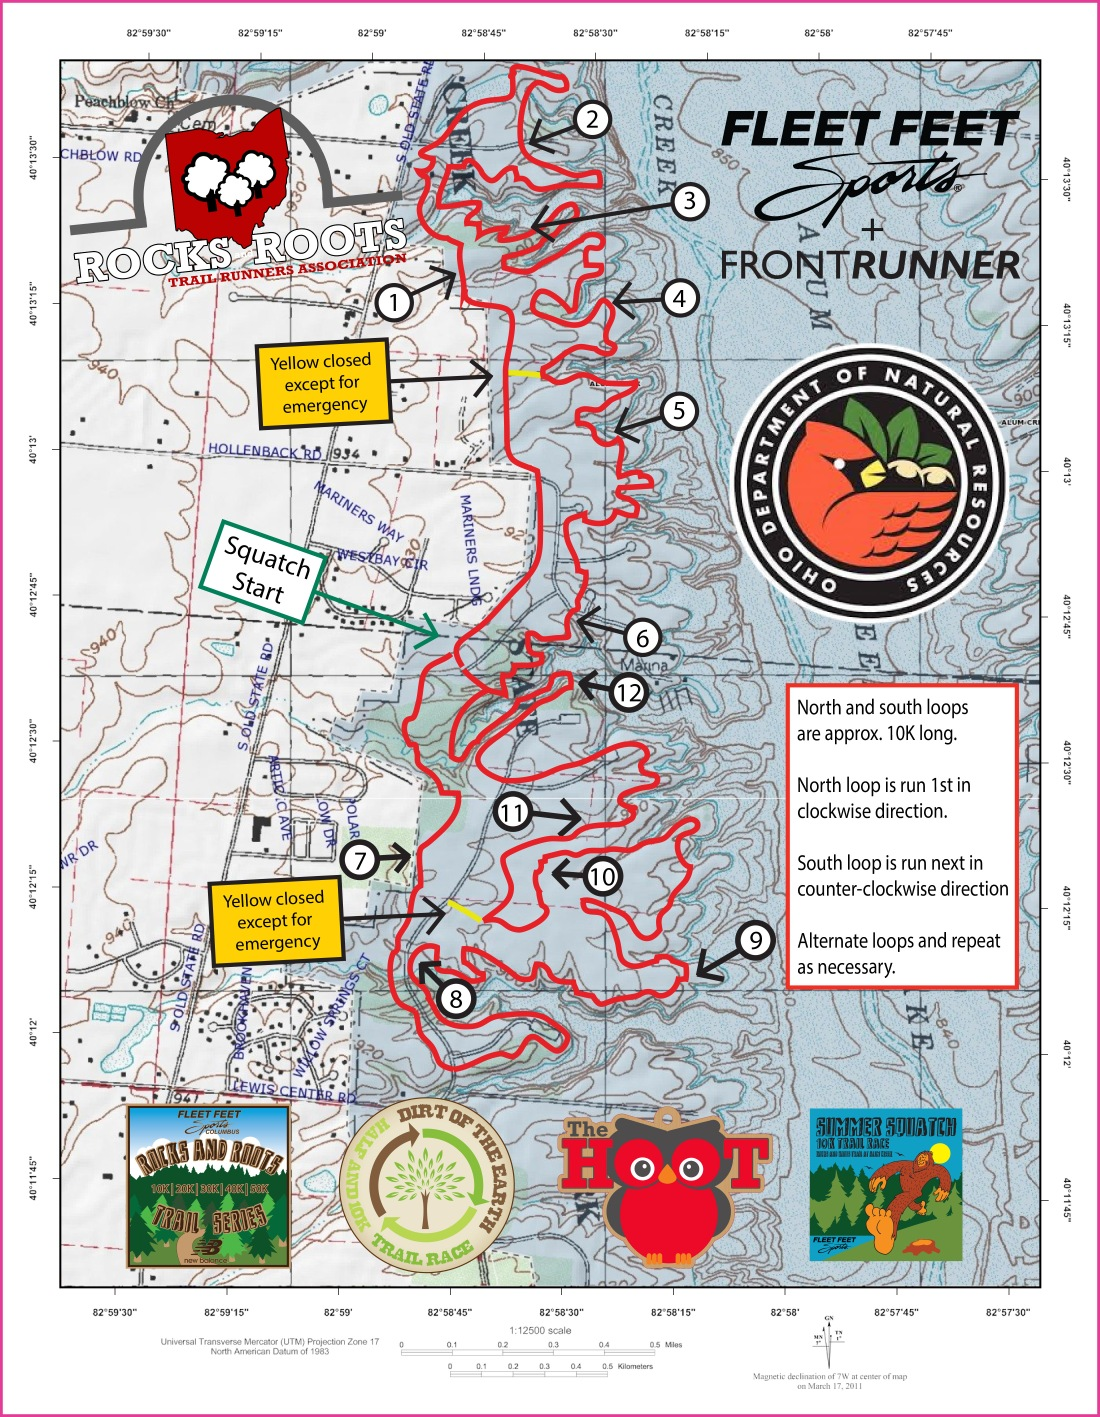 RRTRA TRAIL MAP 11x17 v12.23.15